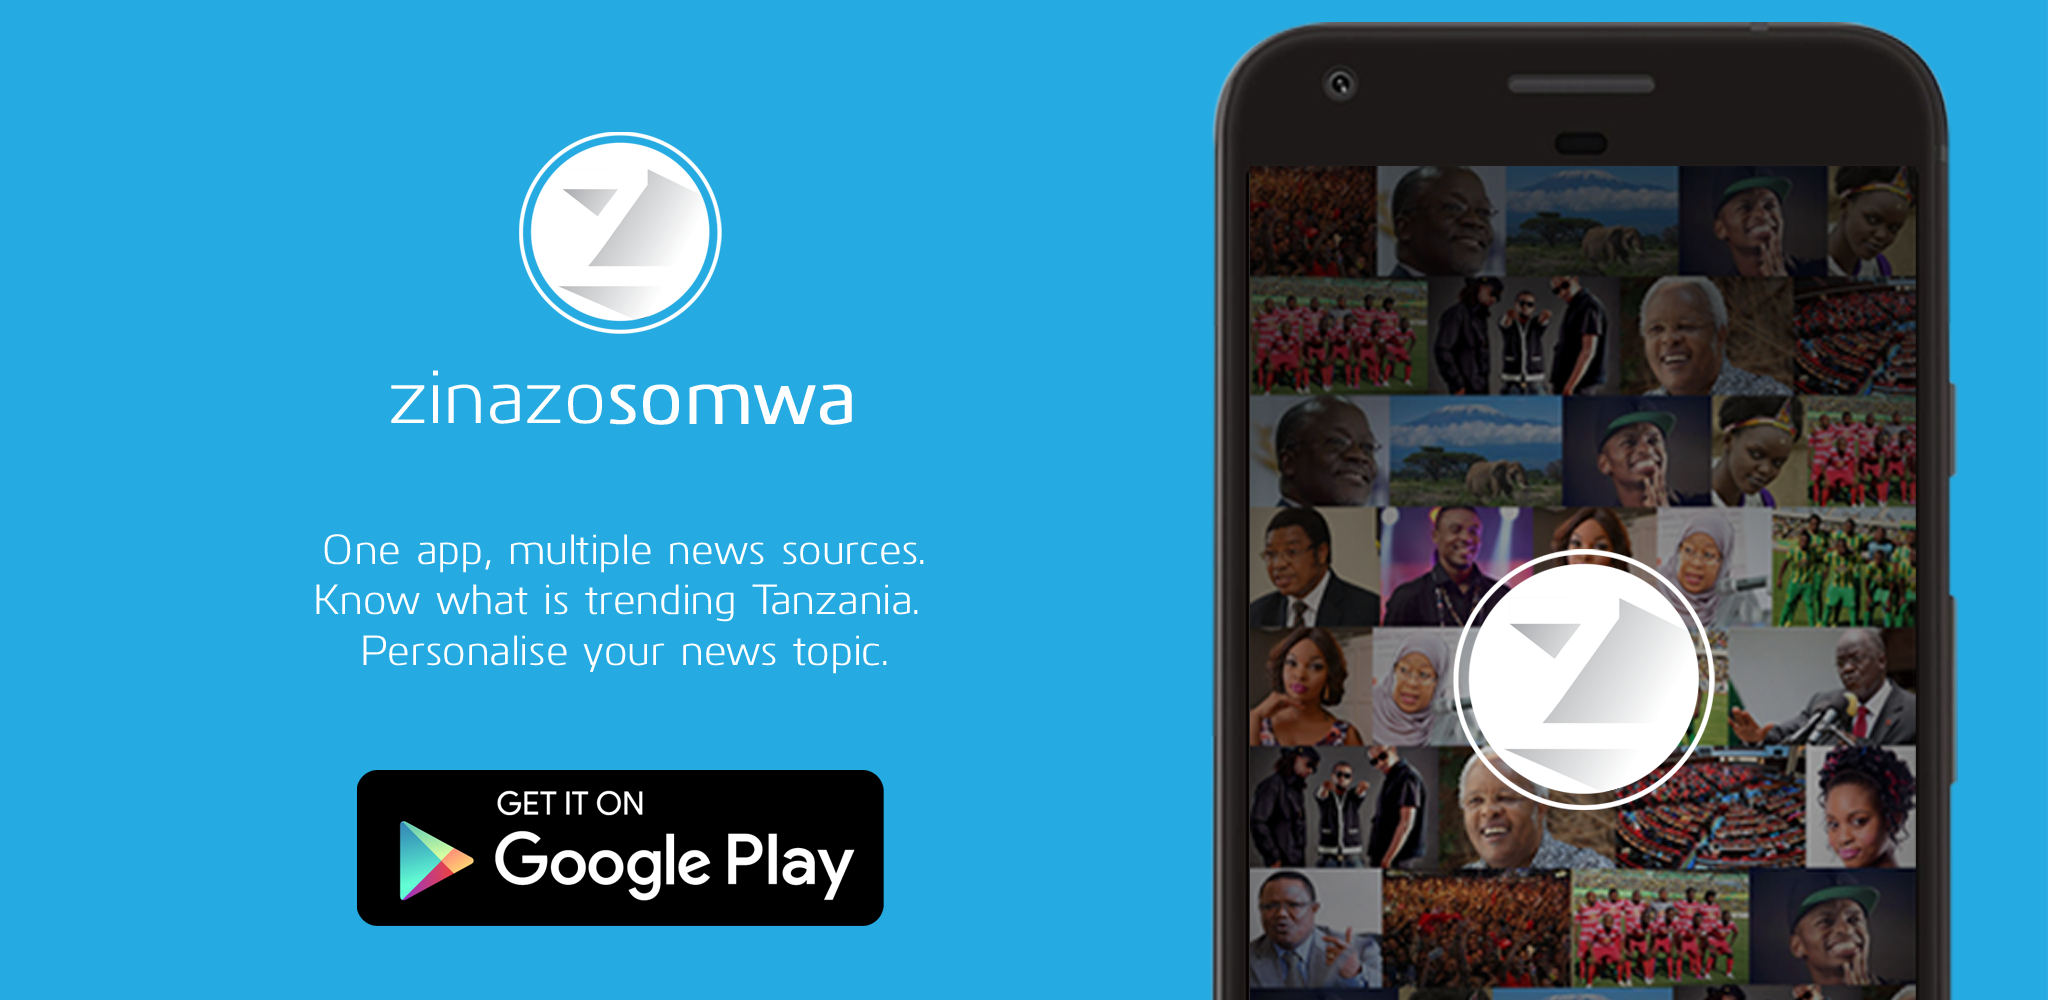 Zinazosomwa.  One app, multiple news sources. Know what is trending Tanzania.  Personalize your news topic.